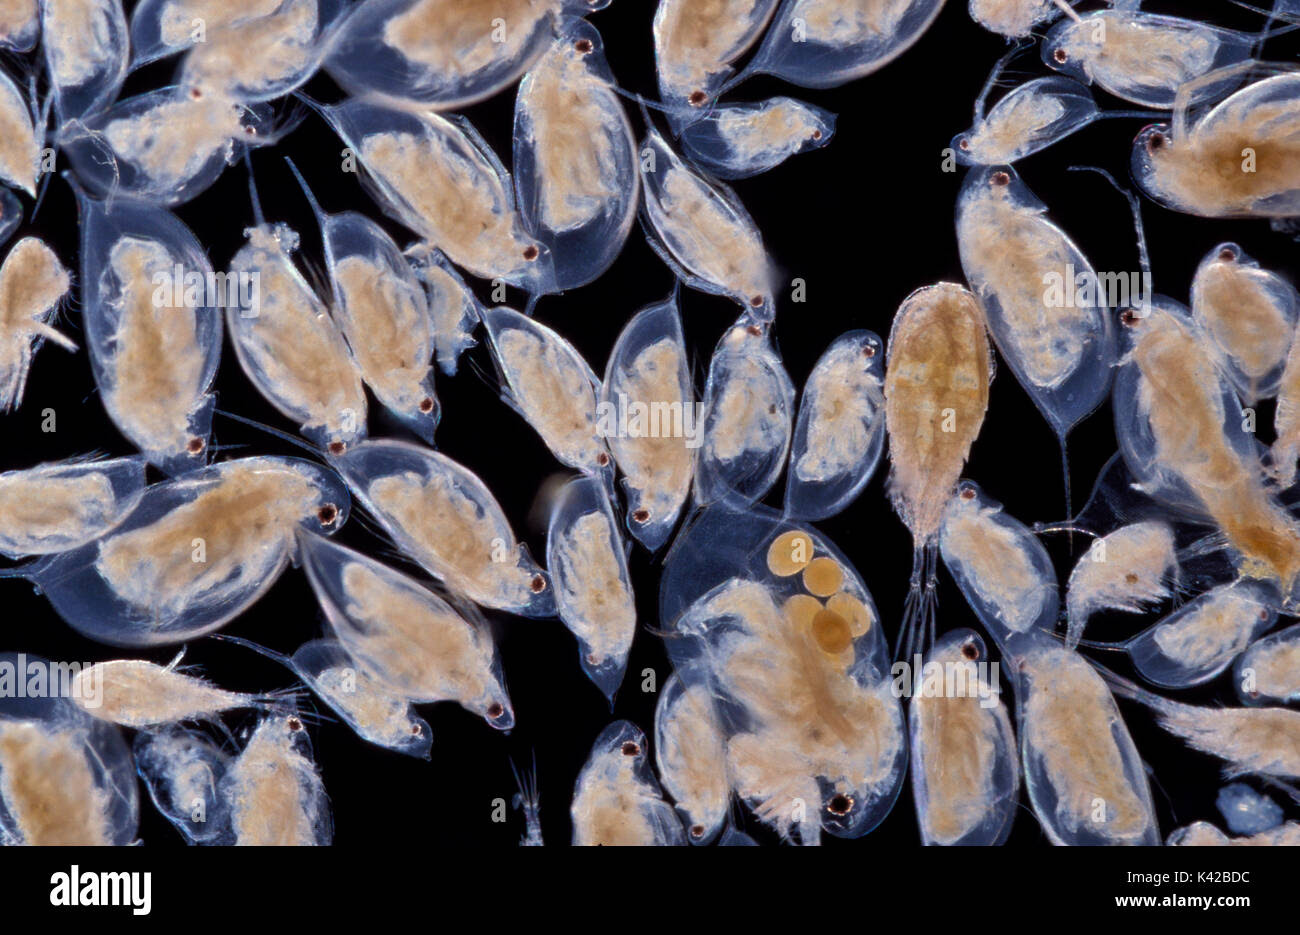 Daphnia Water Fleas Water Life Parthenogenesis Aquatic Eggs